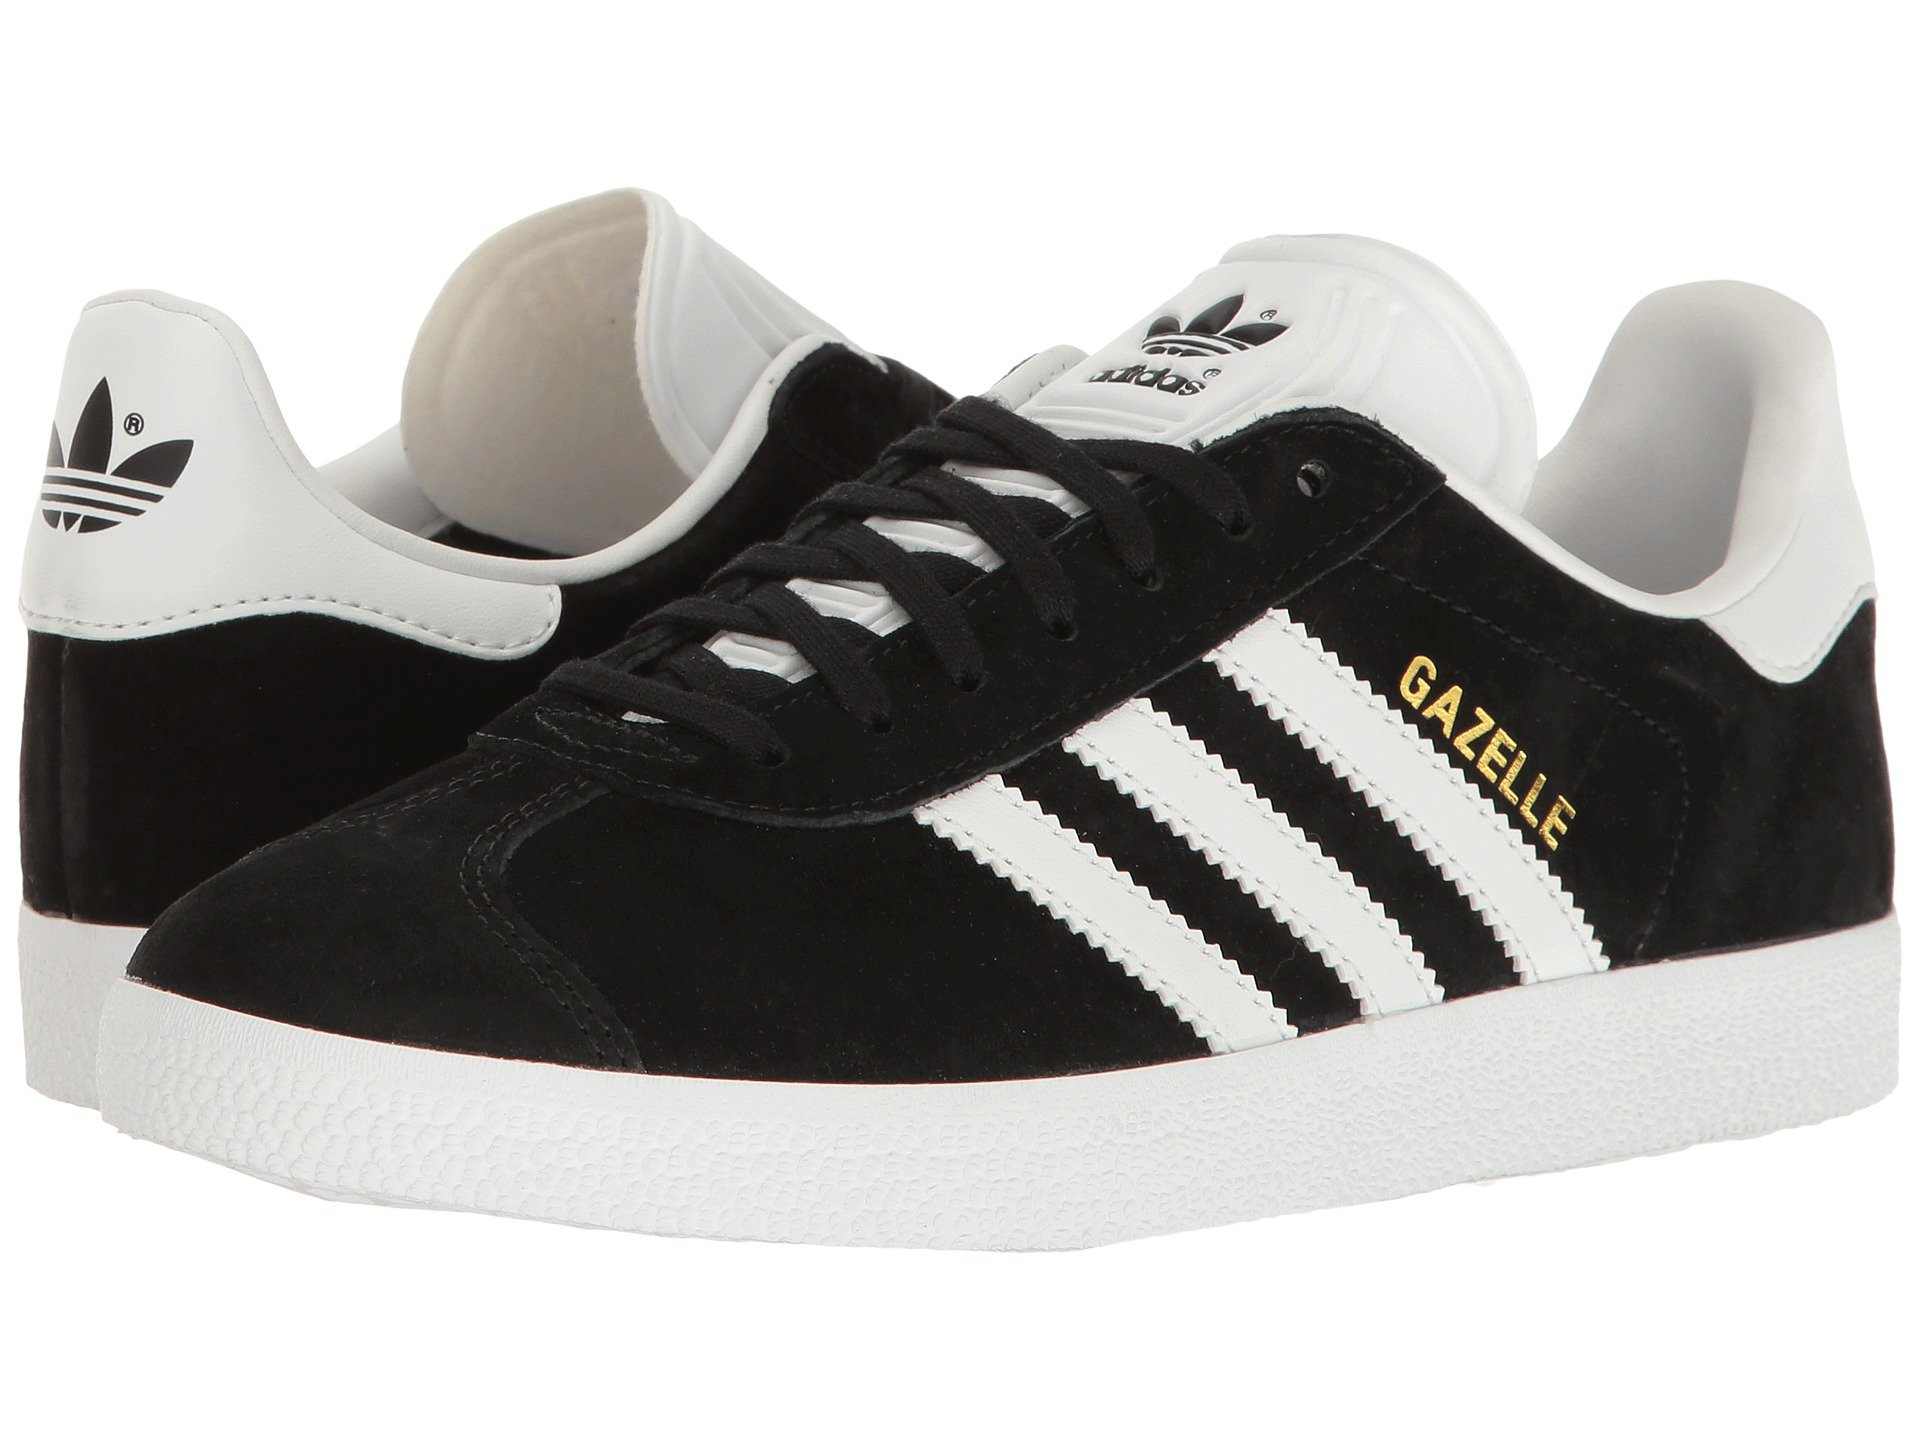 View More Like This adidas Originals - Gazelle